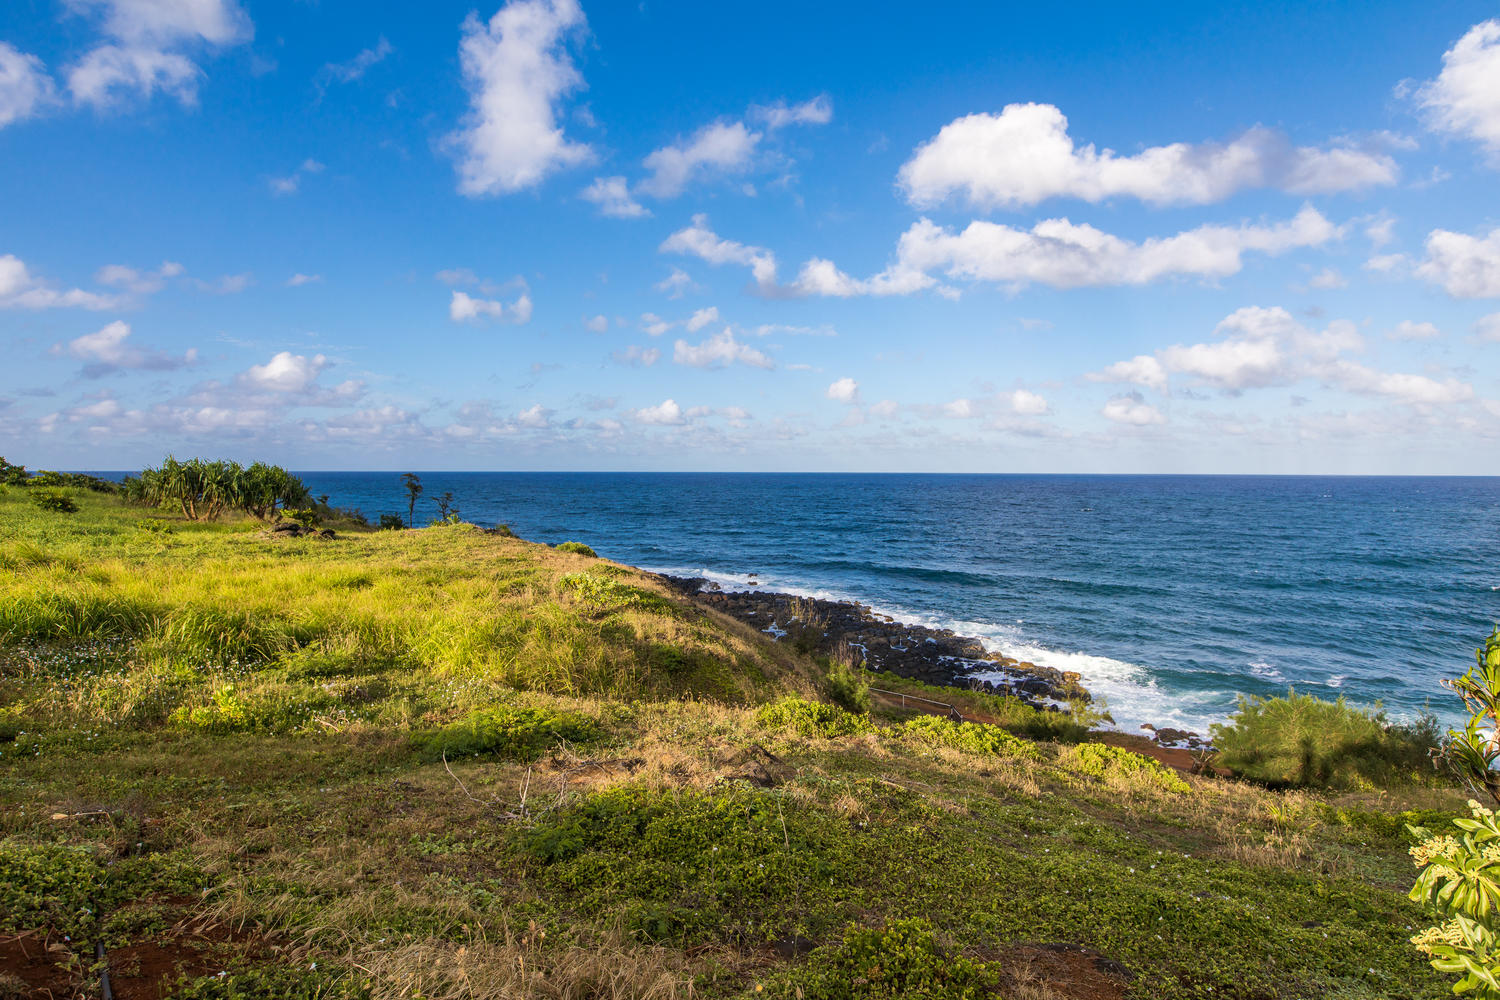 Single Family Home for Sale at Stunning Ocean Views 2622-G Kapli St Kapaa, Hawaii 96746 United States